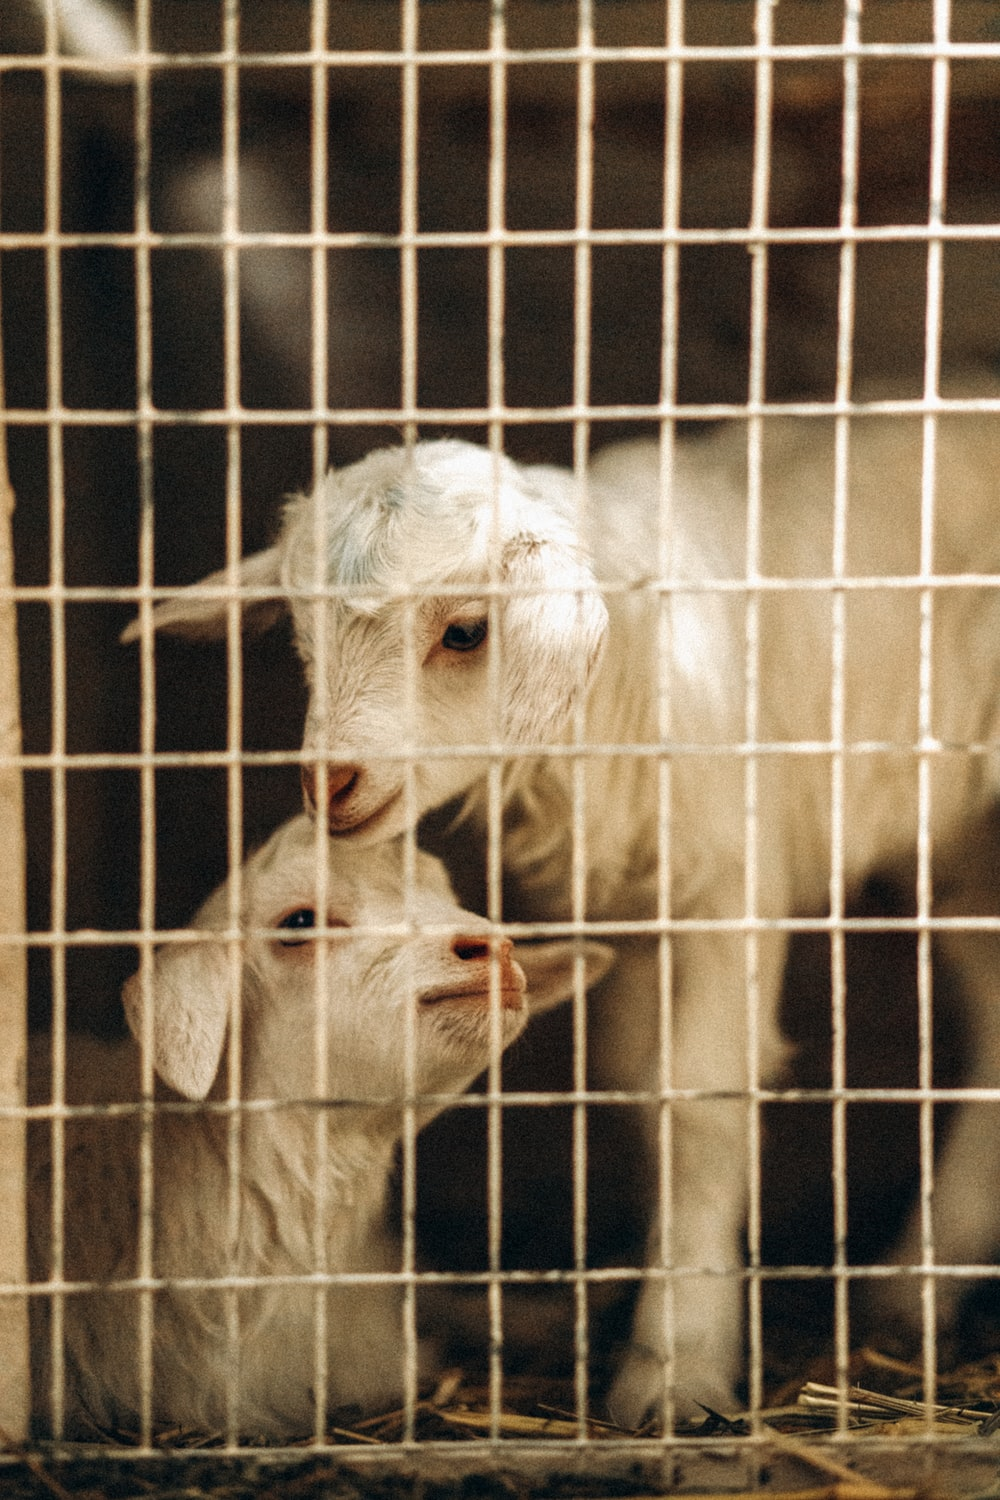 white goat in cage during daytime